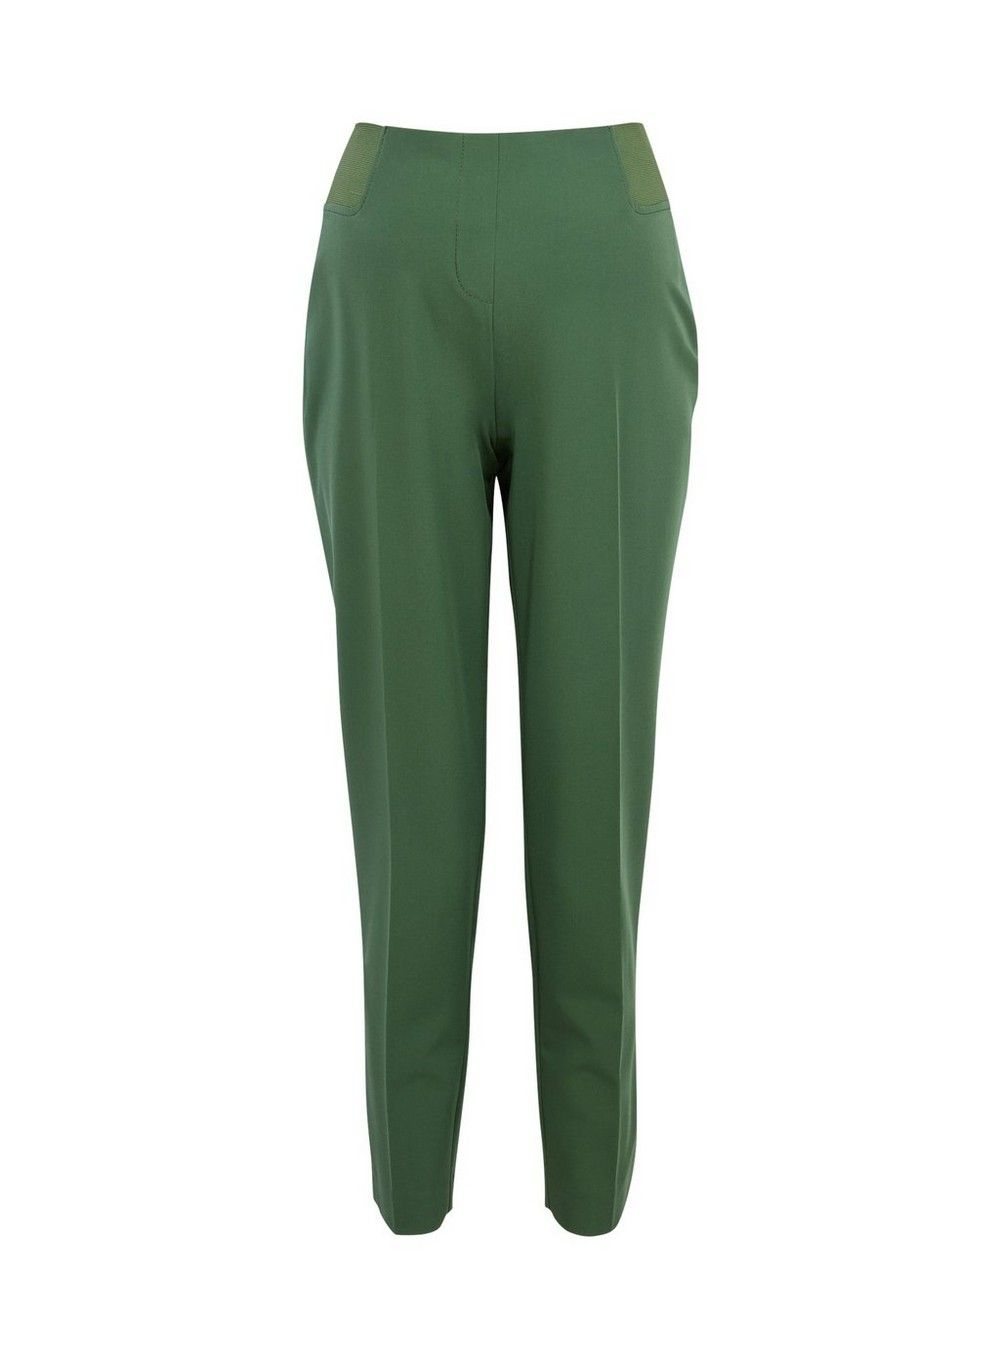 Dorothy Perkins Womens Maternity Green Ankle Grazer Trousers Pants Casual